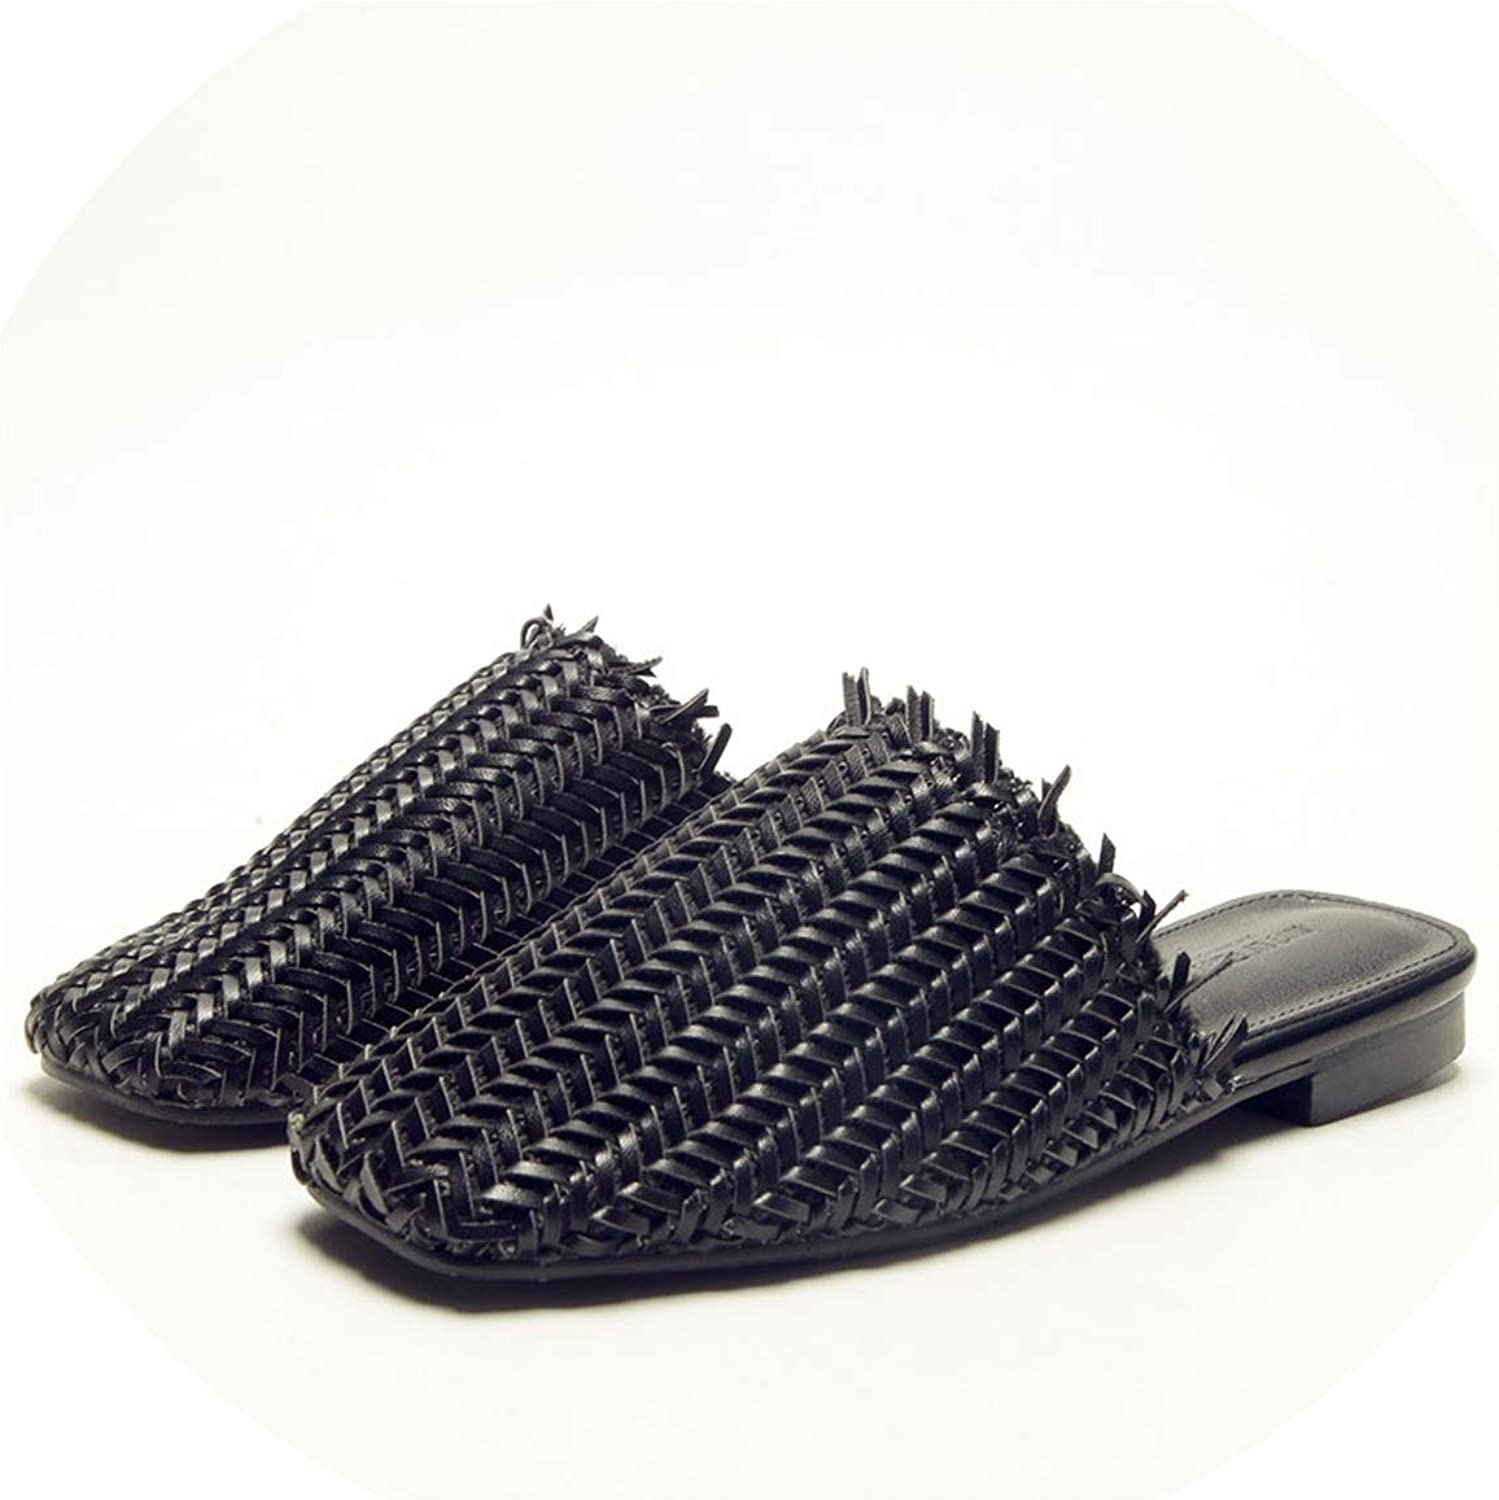 BEST WISH-slipper shoes Woman Straw Weaving Slides Fringe Slippers Low Heel Mule Hollow Out Square Toe Sandals Loafers shoes women Black Apricot